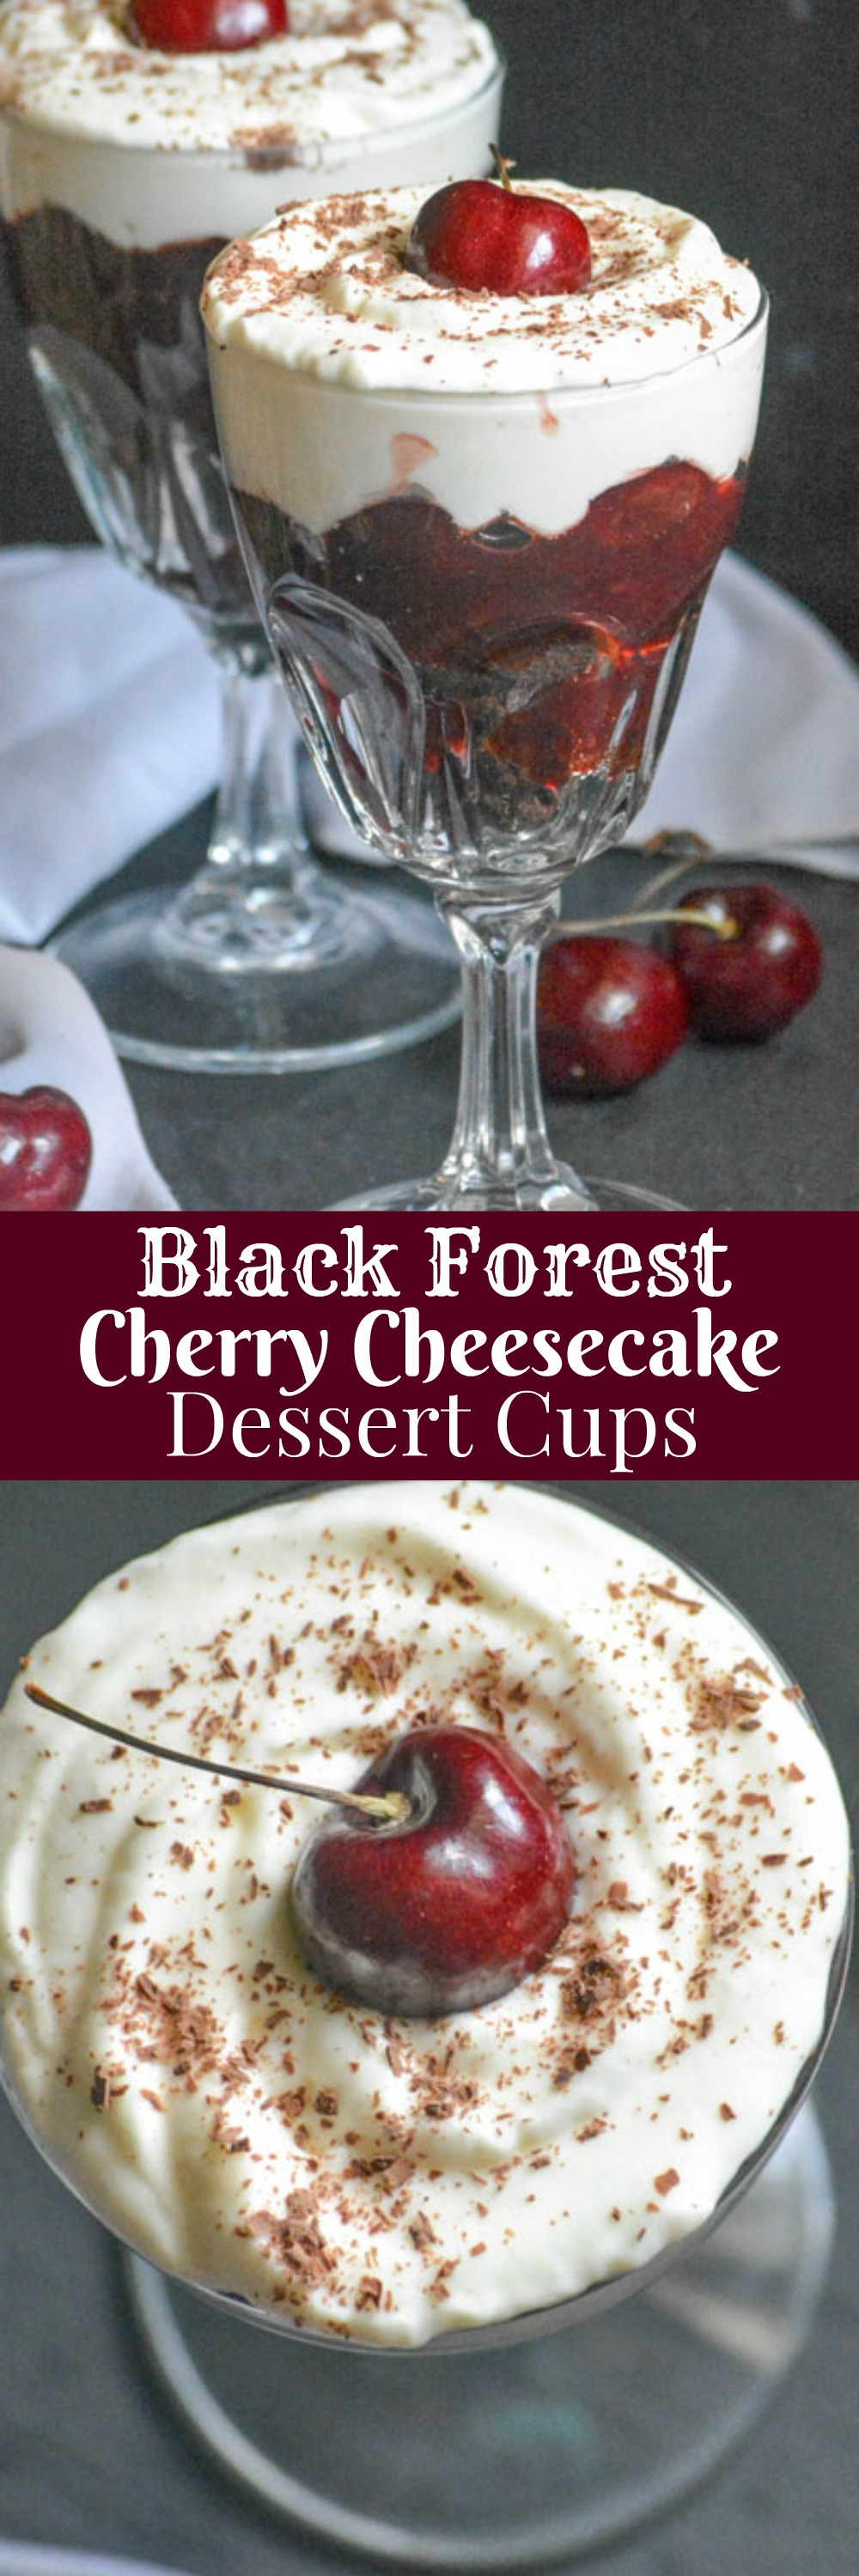 Get the flavors you crave from a family favorite cake, in beautiful single serve form with these Black Forest Cherry Cheesecake Dessert Cups.